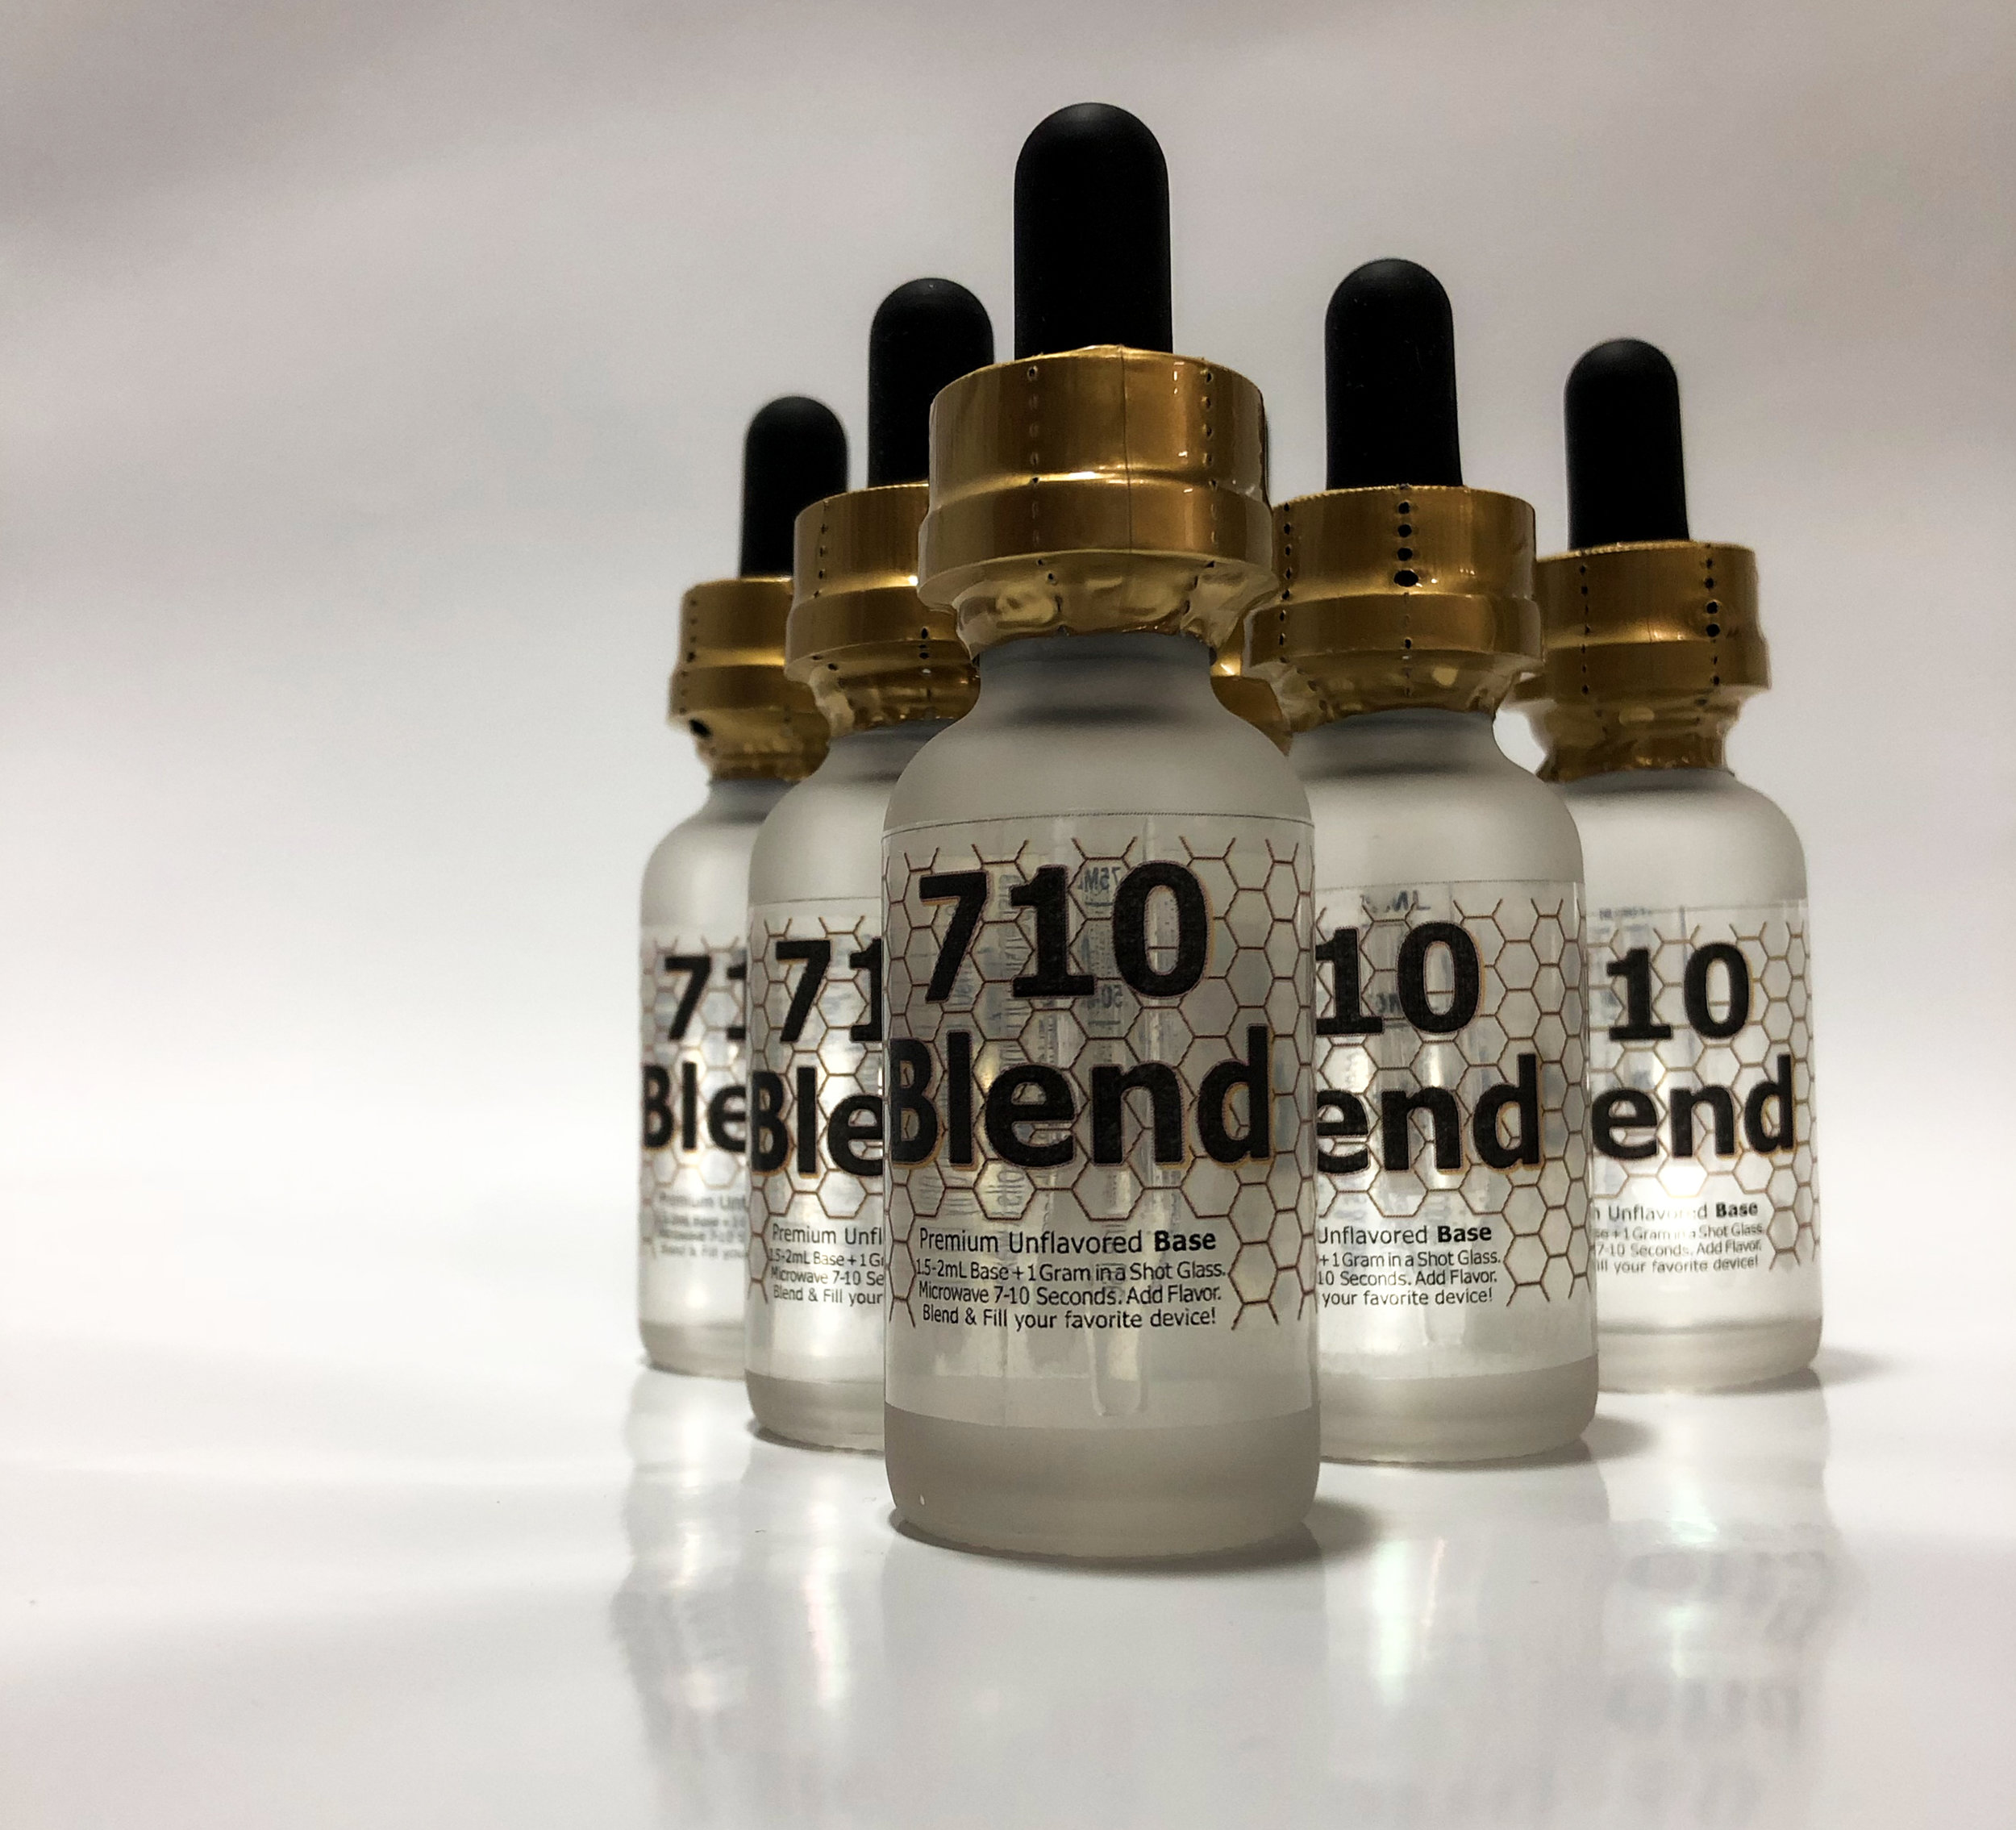 710 Blend is a base for making DIY cartridges. This product will allow you to take your favorite wax, oil, or concentrate and easily make refills for your favorite device. With 710 Blend we were focused on a easy to use product that people would love.